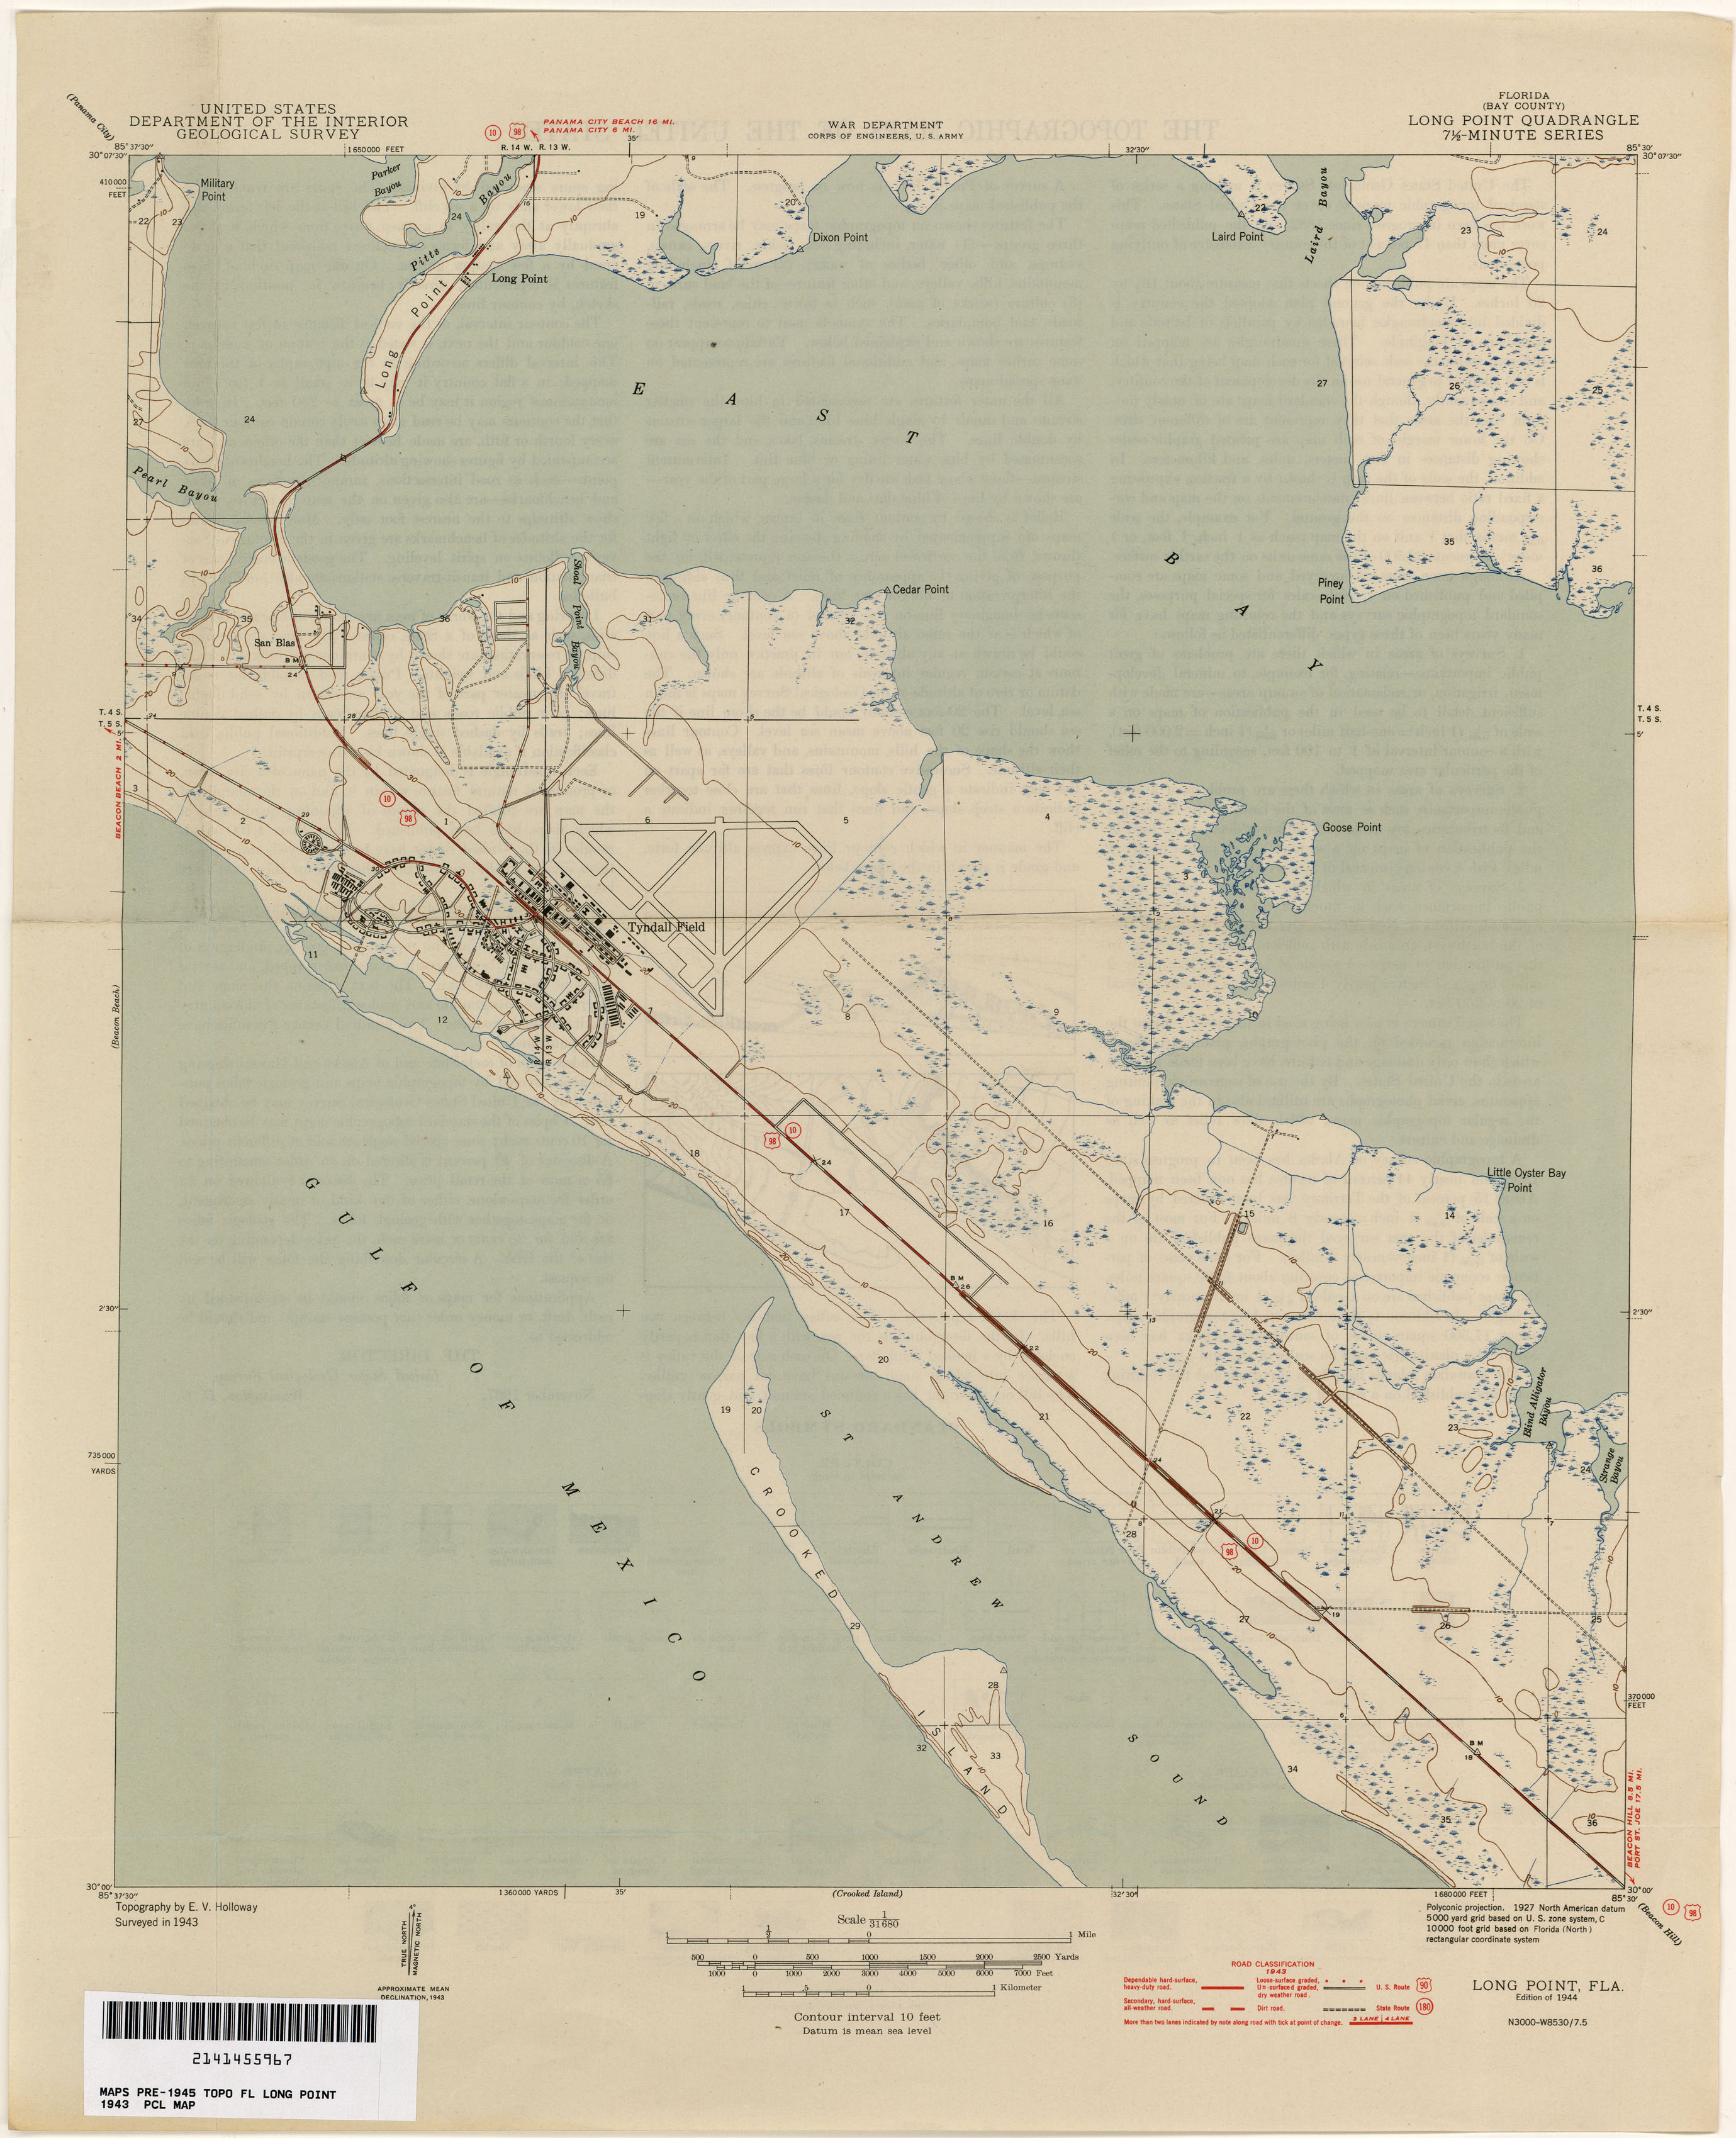 Florida Historical Topographic Maps - Perry-Castañeda Map ...